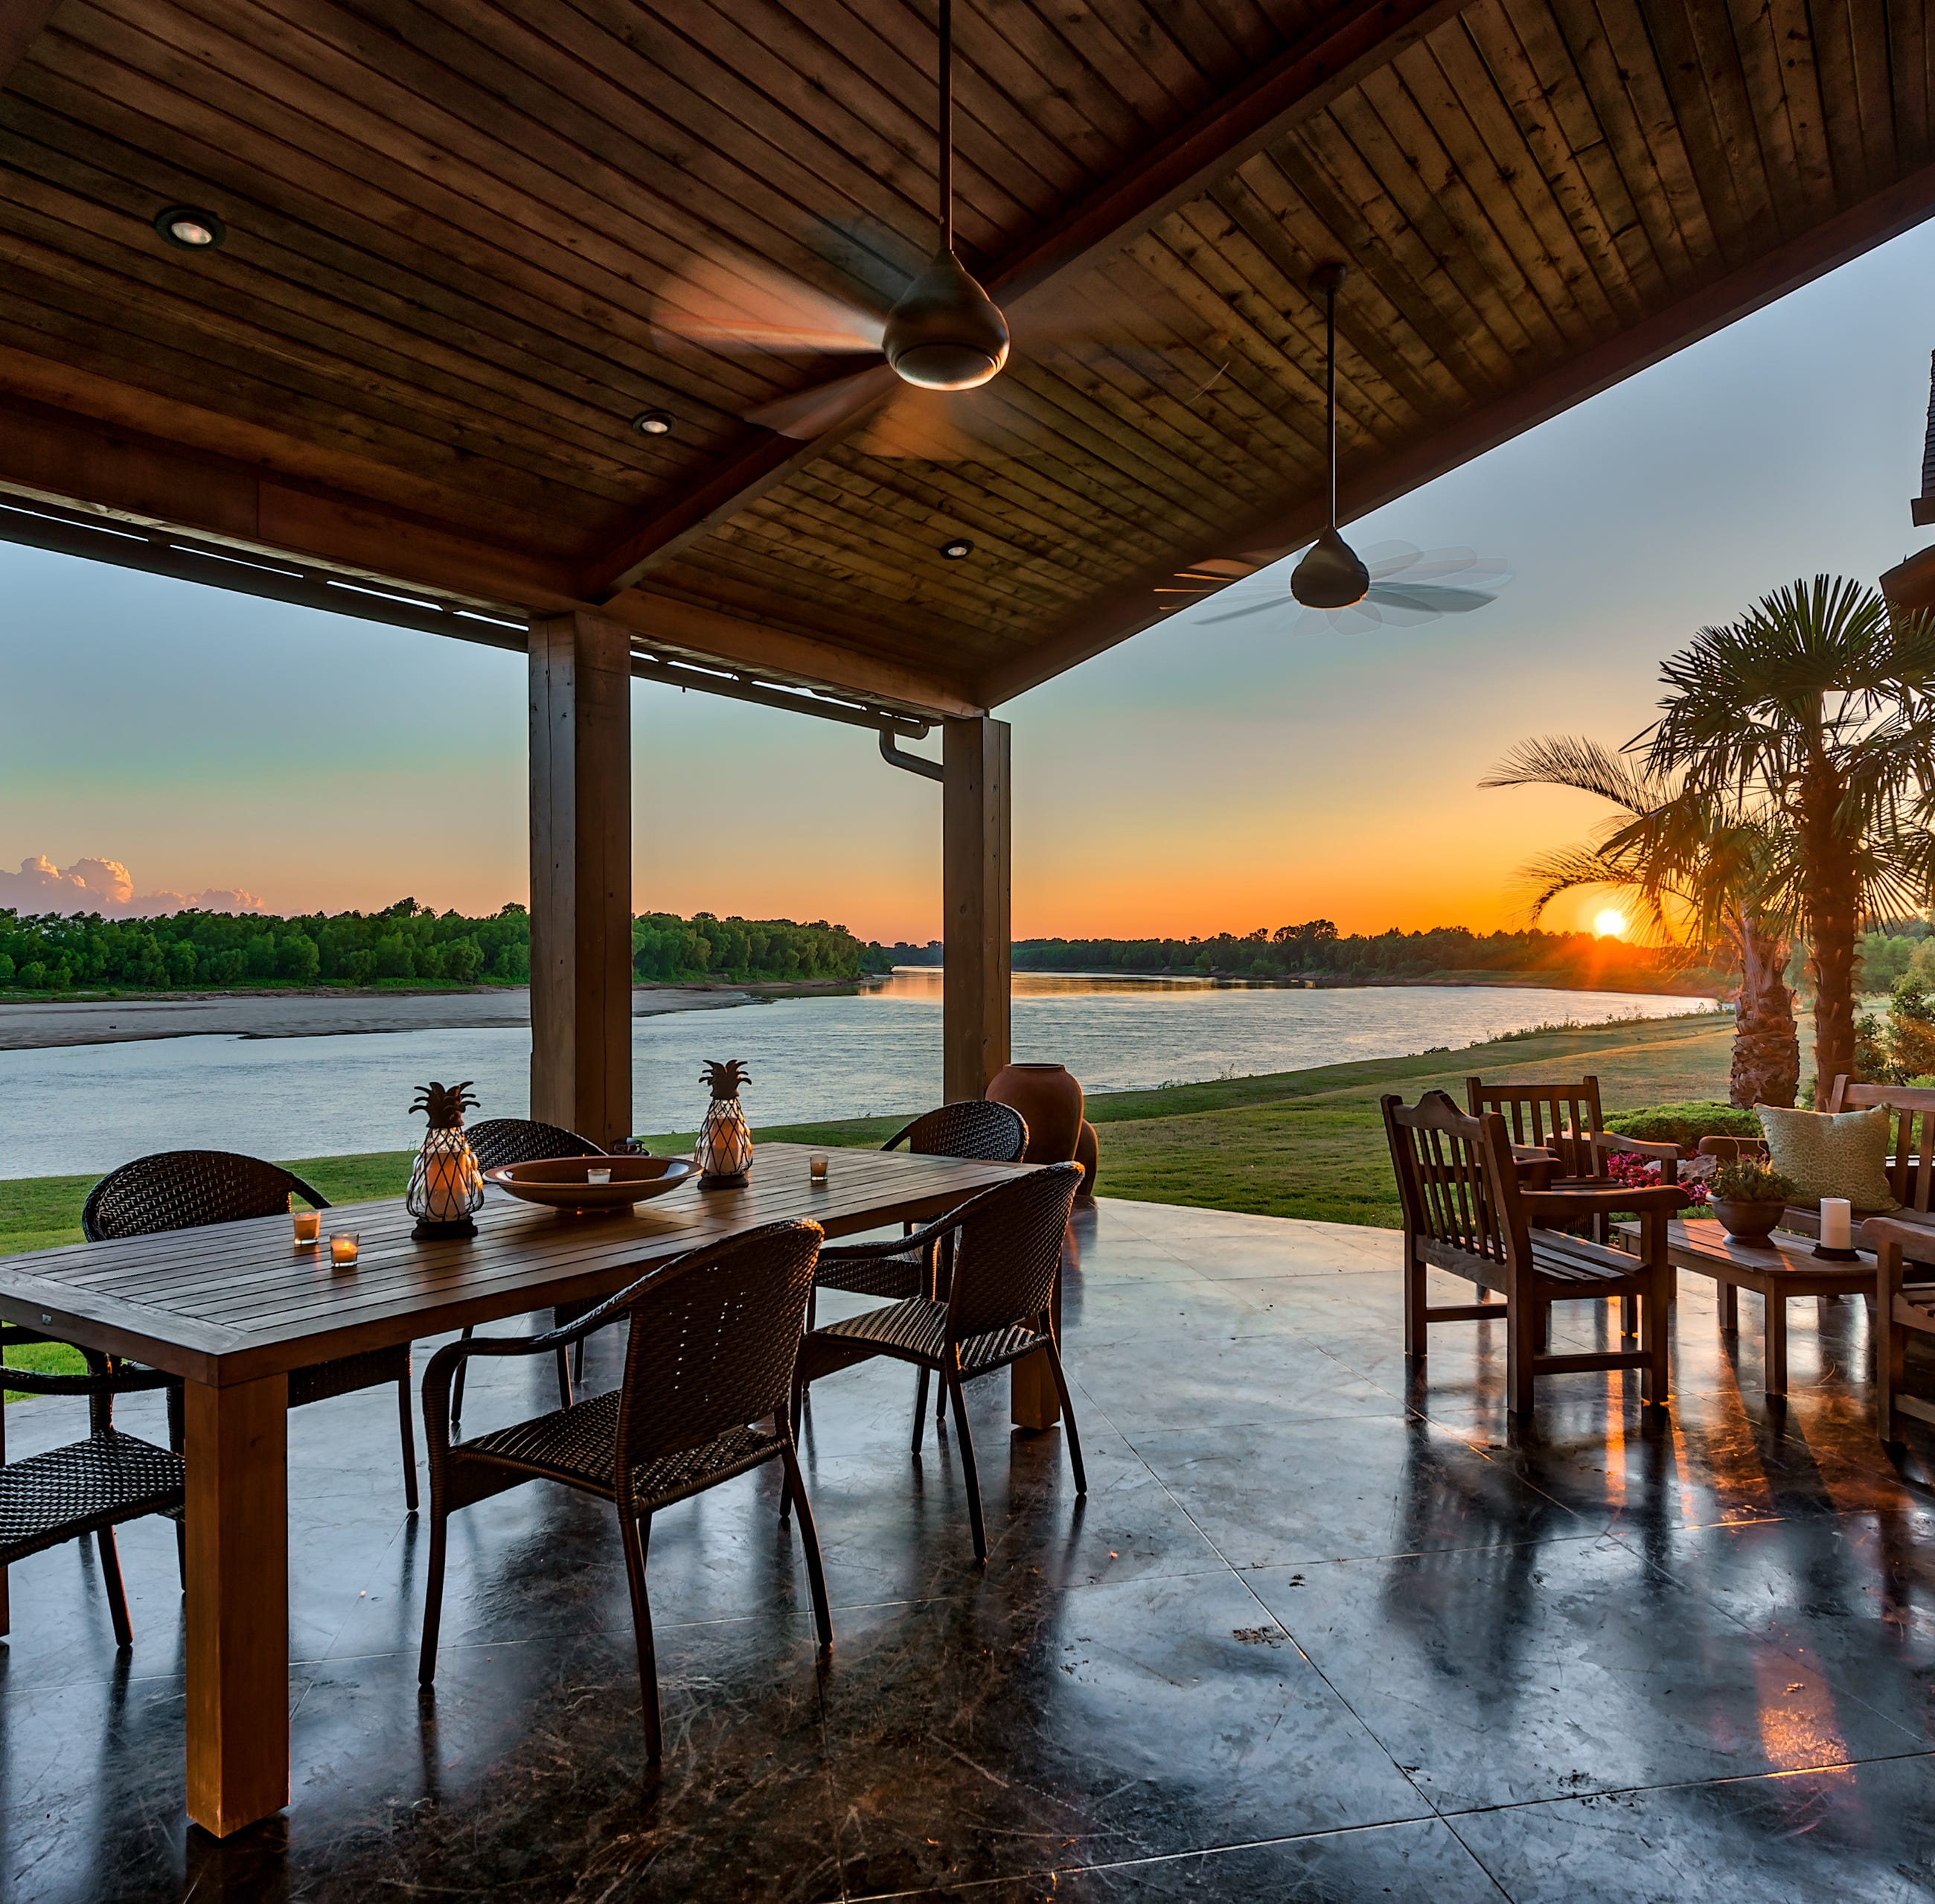 Rustic Bossier retreat has Red River views, stunning sunsets